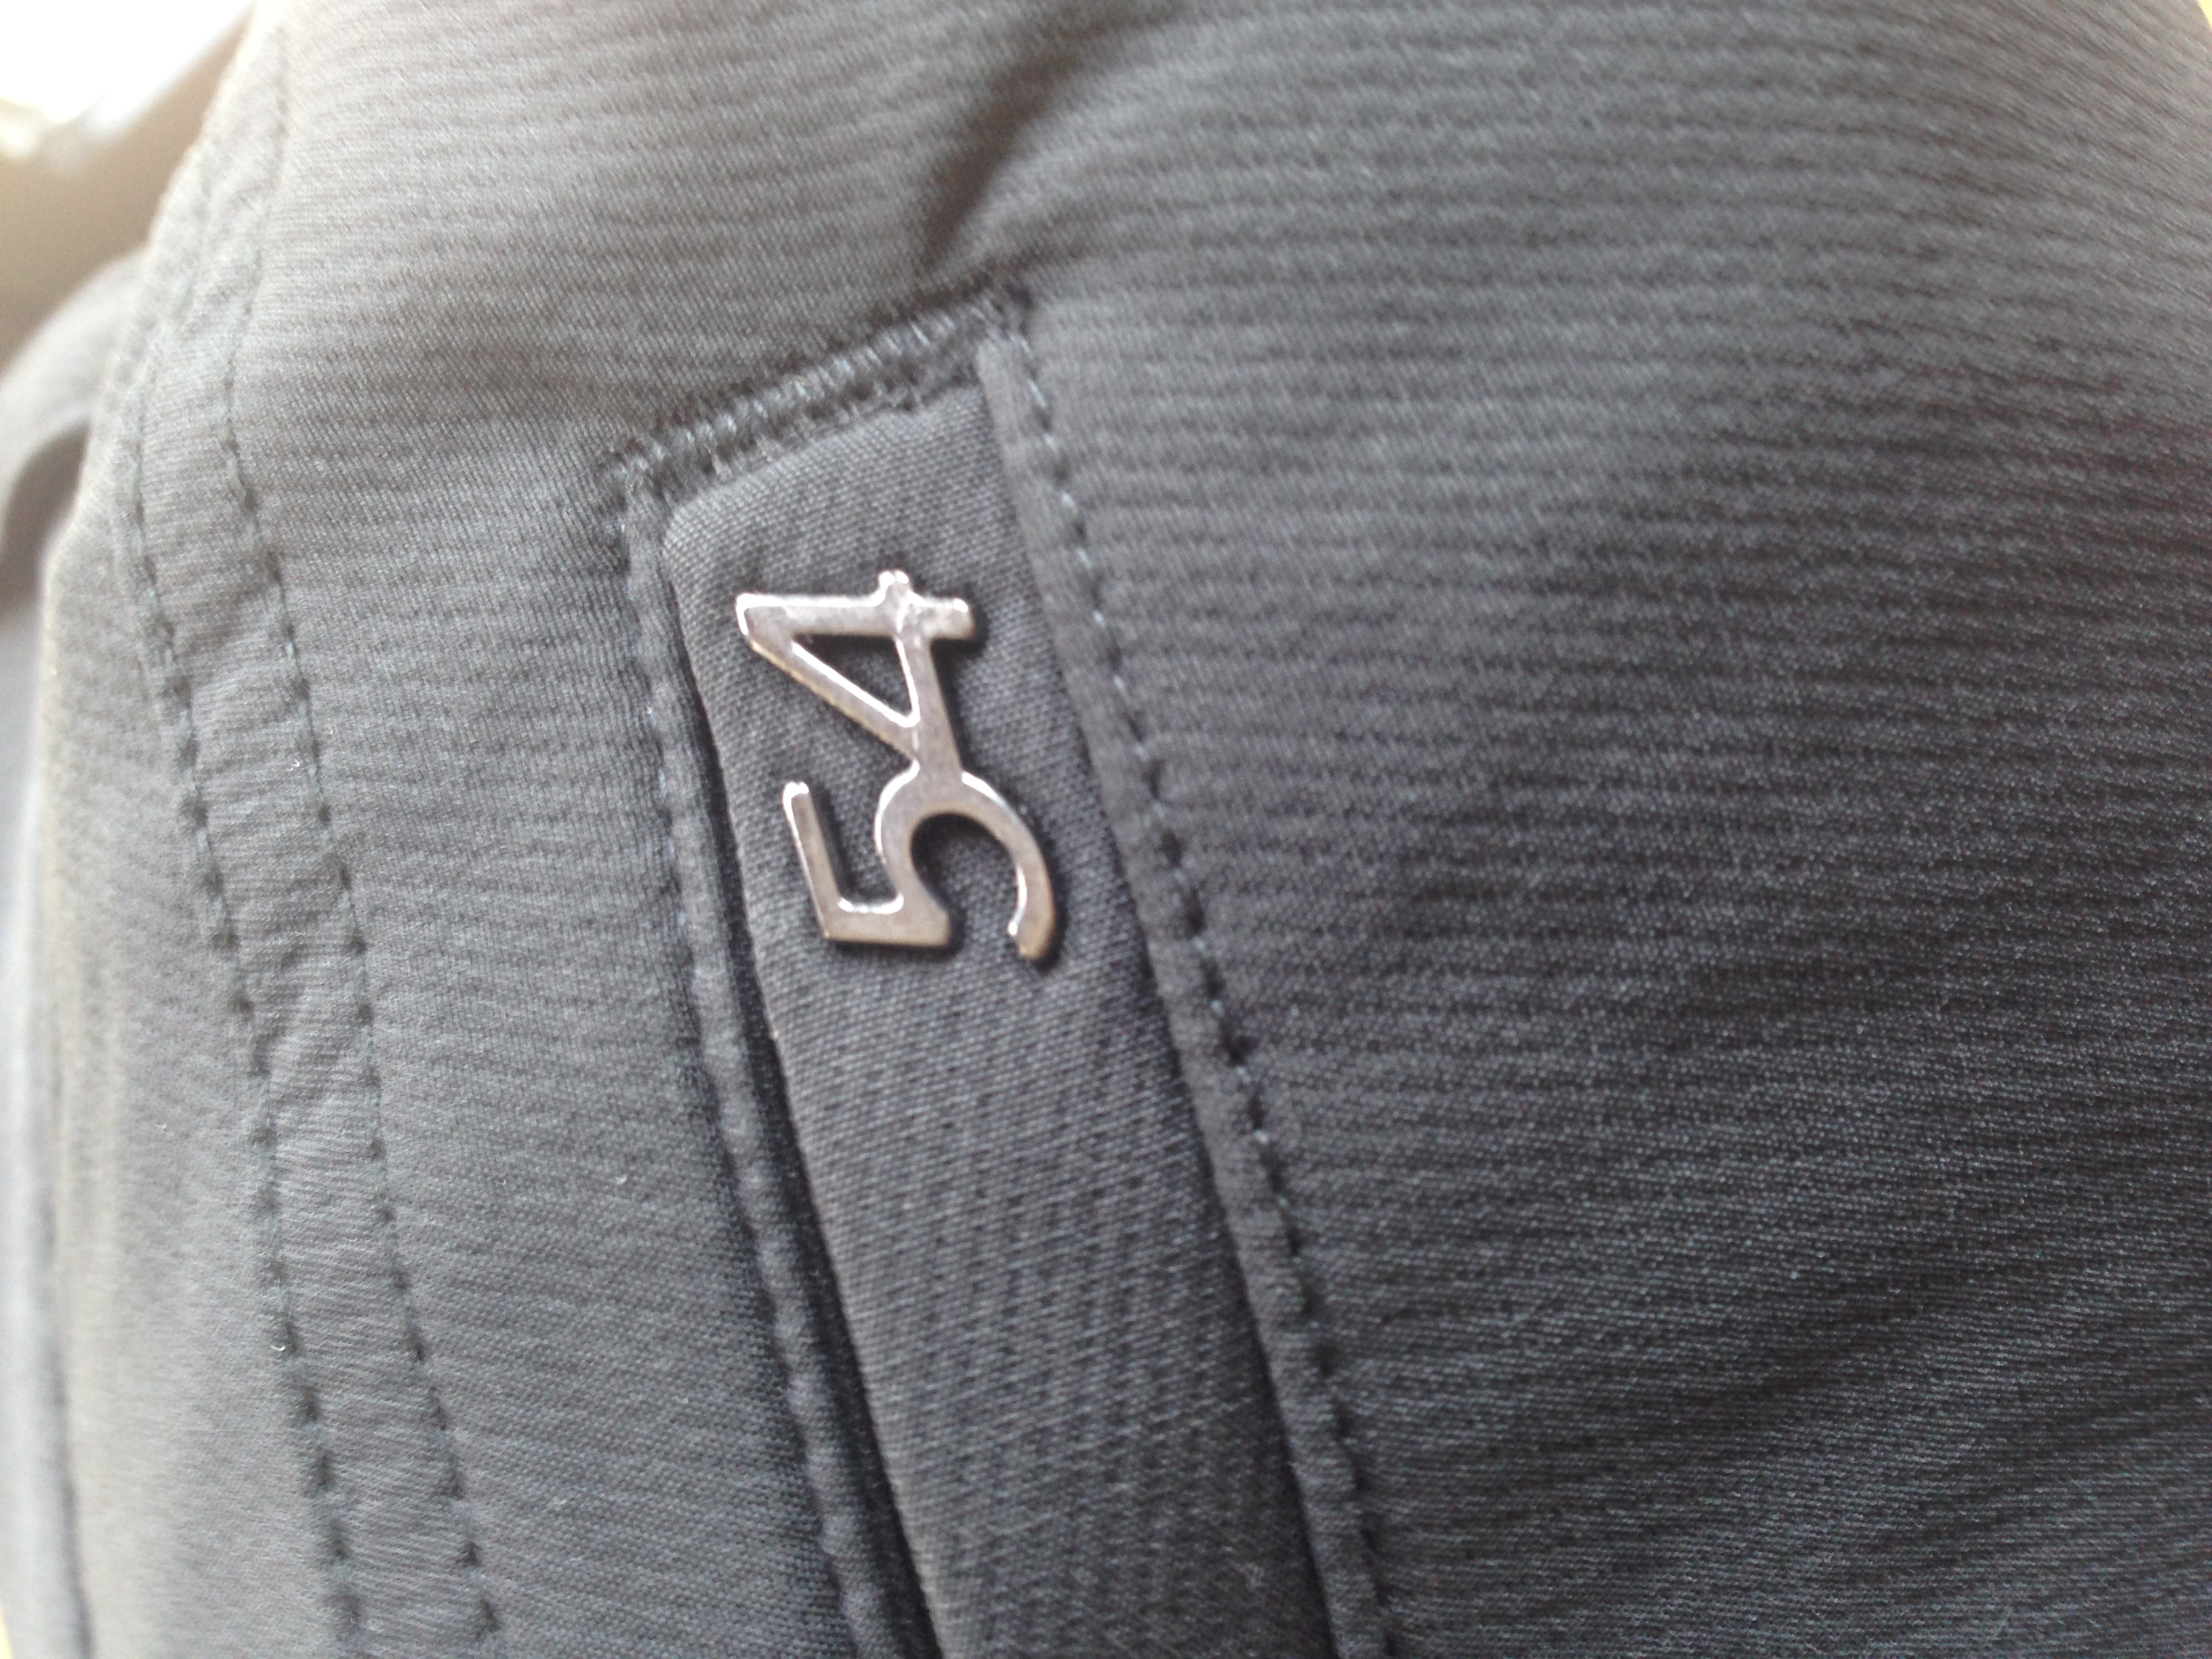 The Chase54 logo on the back pocket of the Norris Trousers